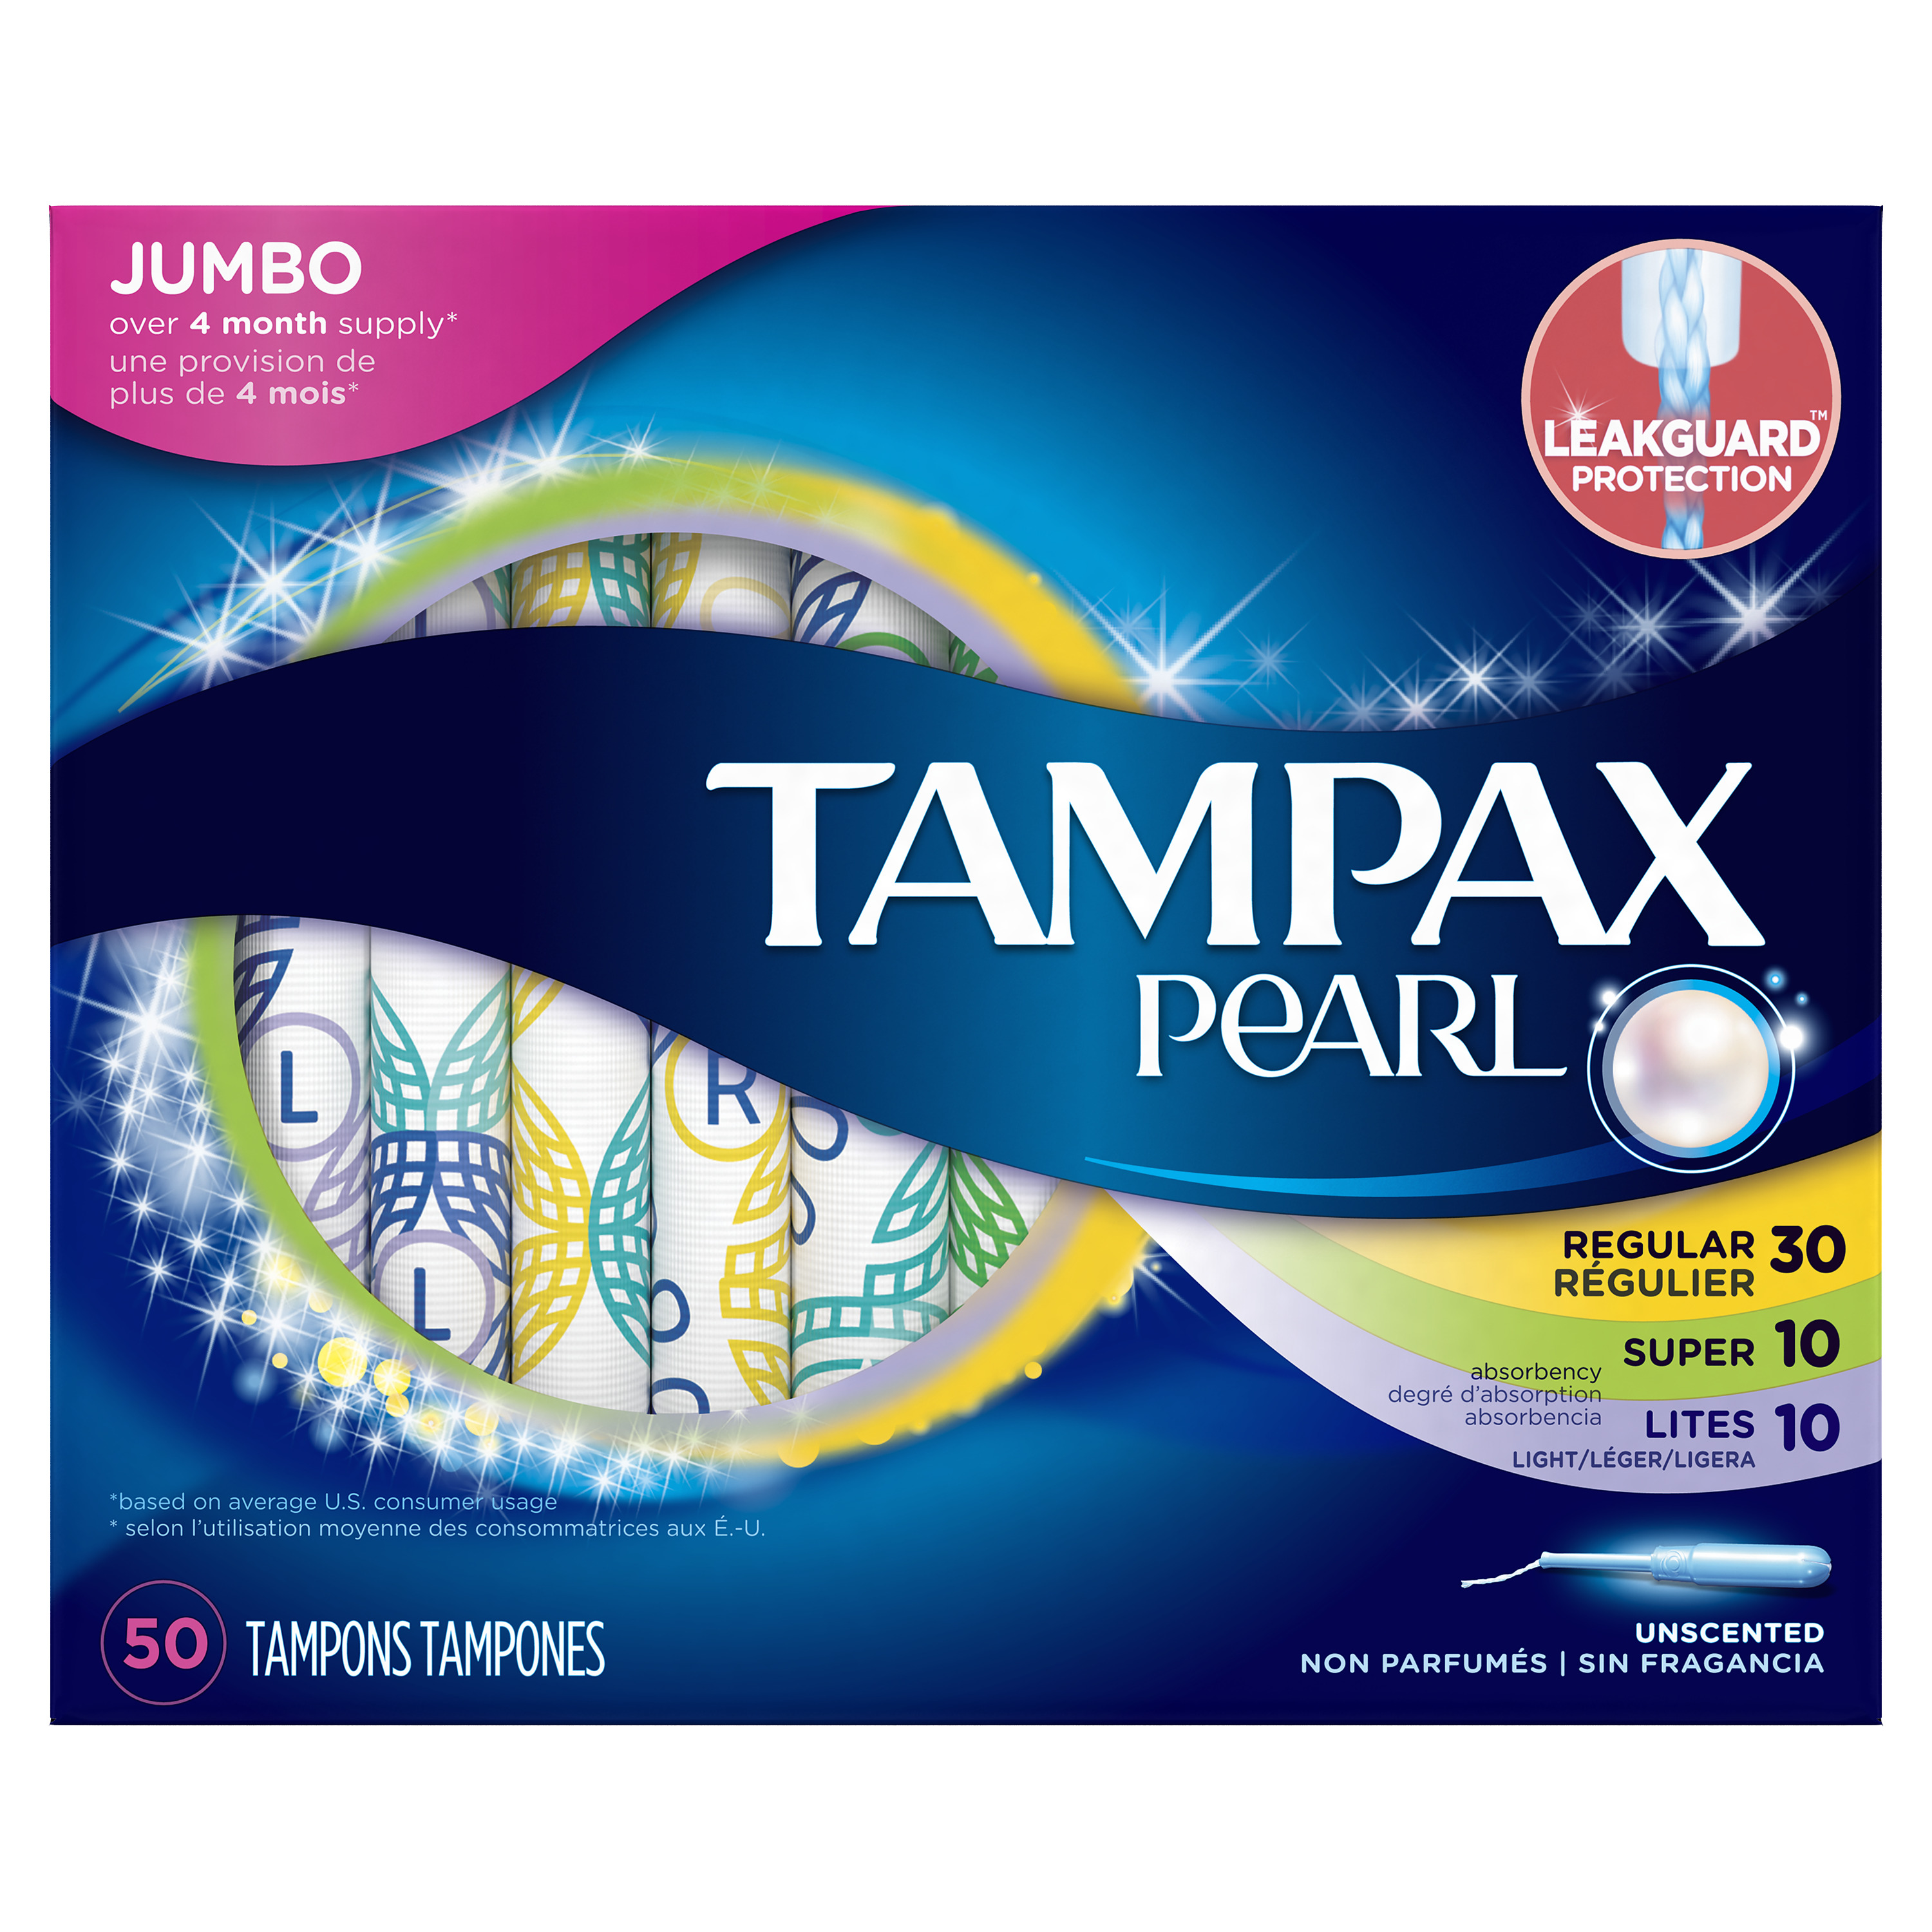 Tampax Pearl Plastic Tampons Triplepack (Light/Regular/Super), Unscented, 50 Count